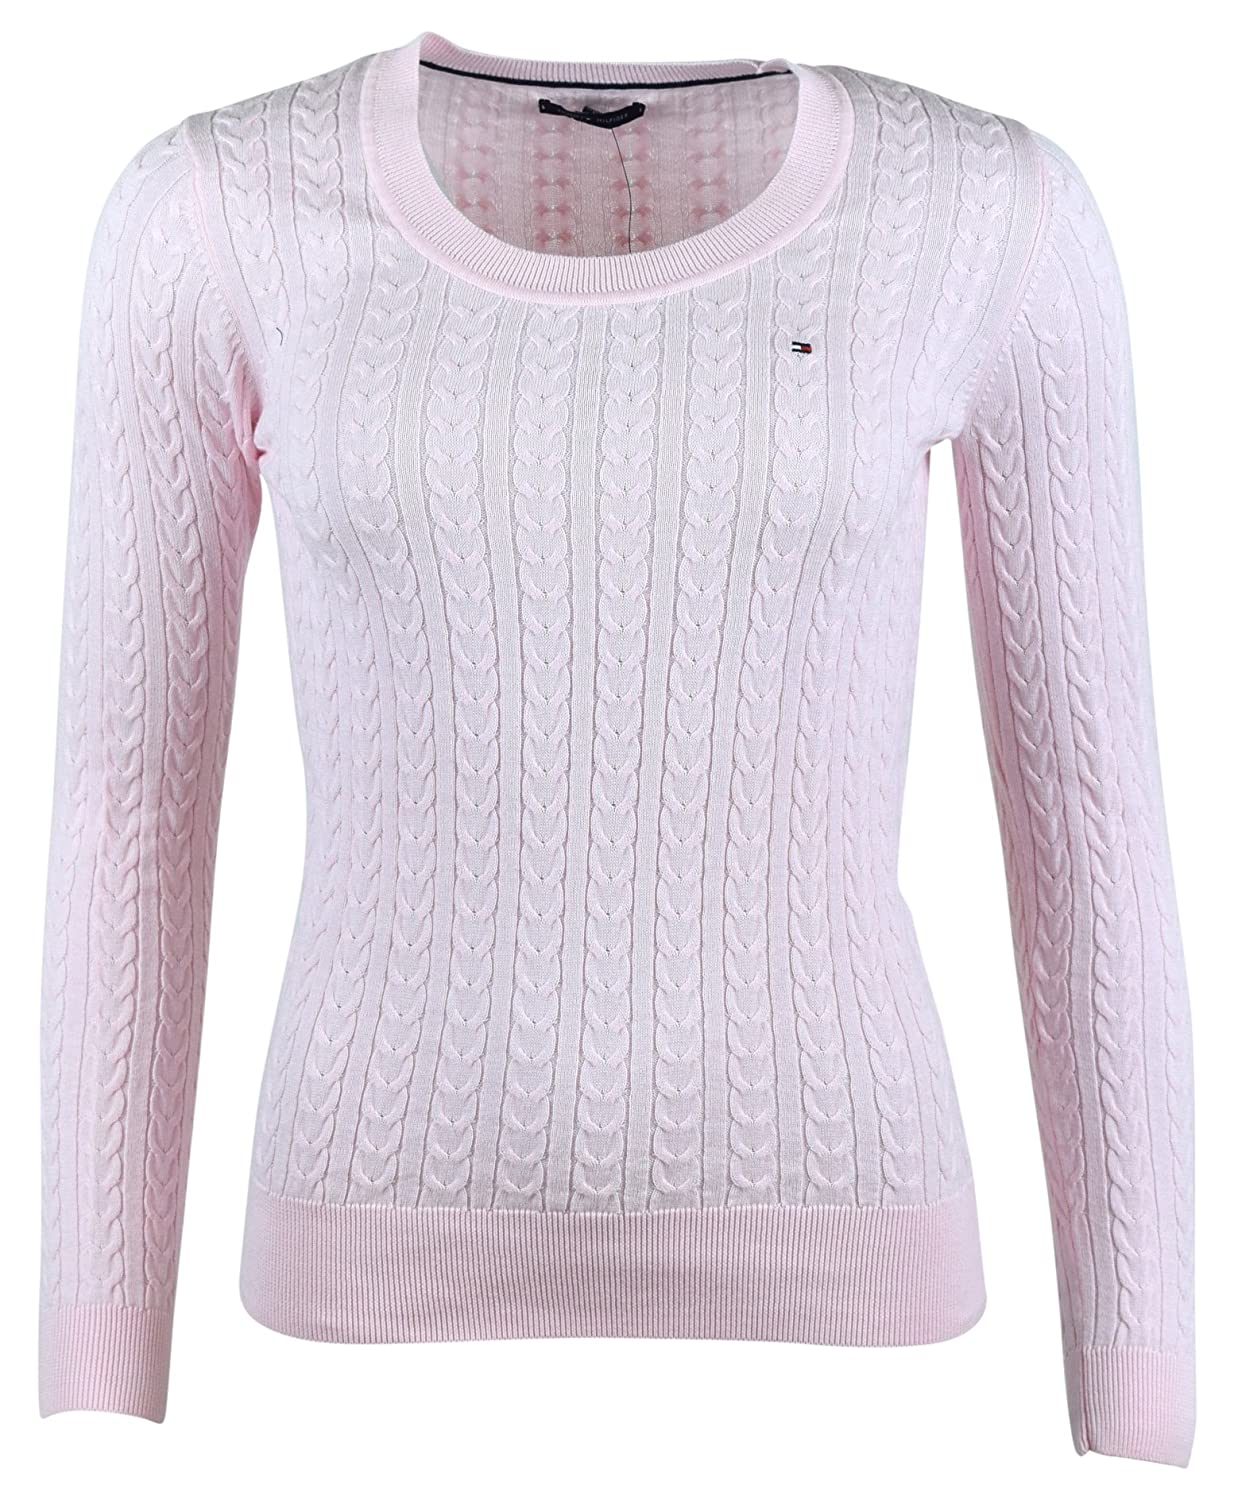 Tommy Hilfiger Damen Pullover, Women's Cable Knit Sweater, X